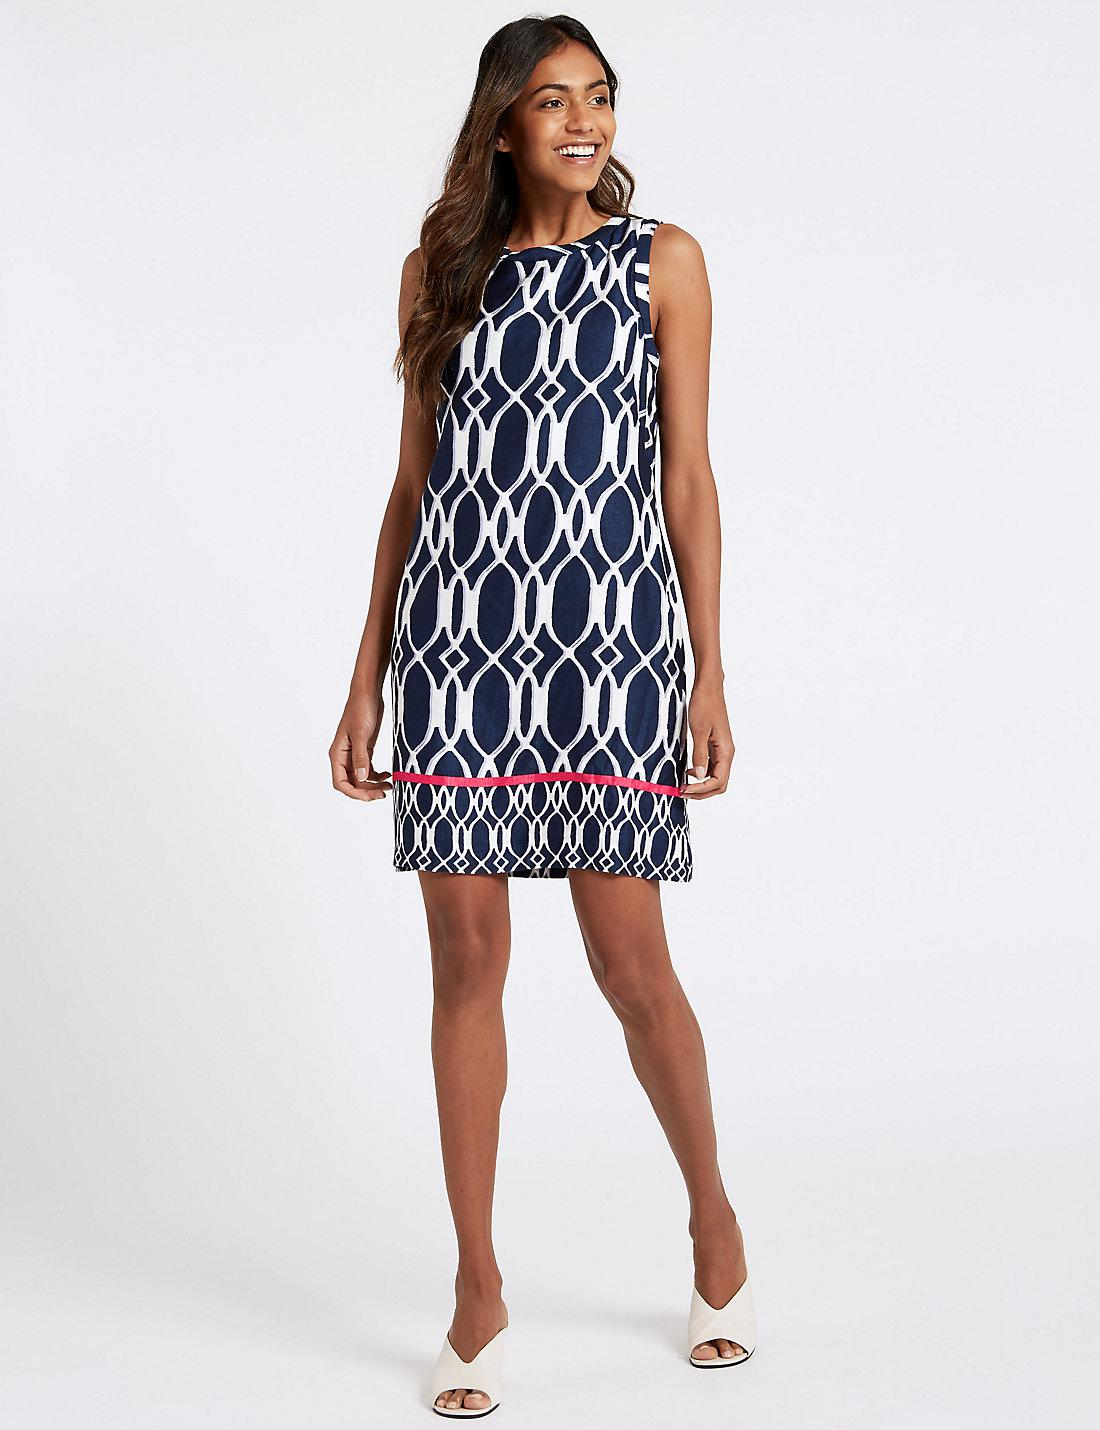 f55d4e213075 Gallery. Previously sold at: Marks & Spencer · Women's Tunic Dresses